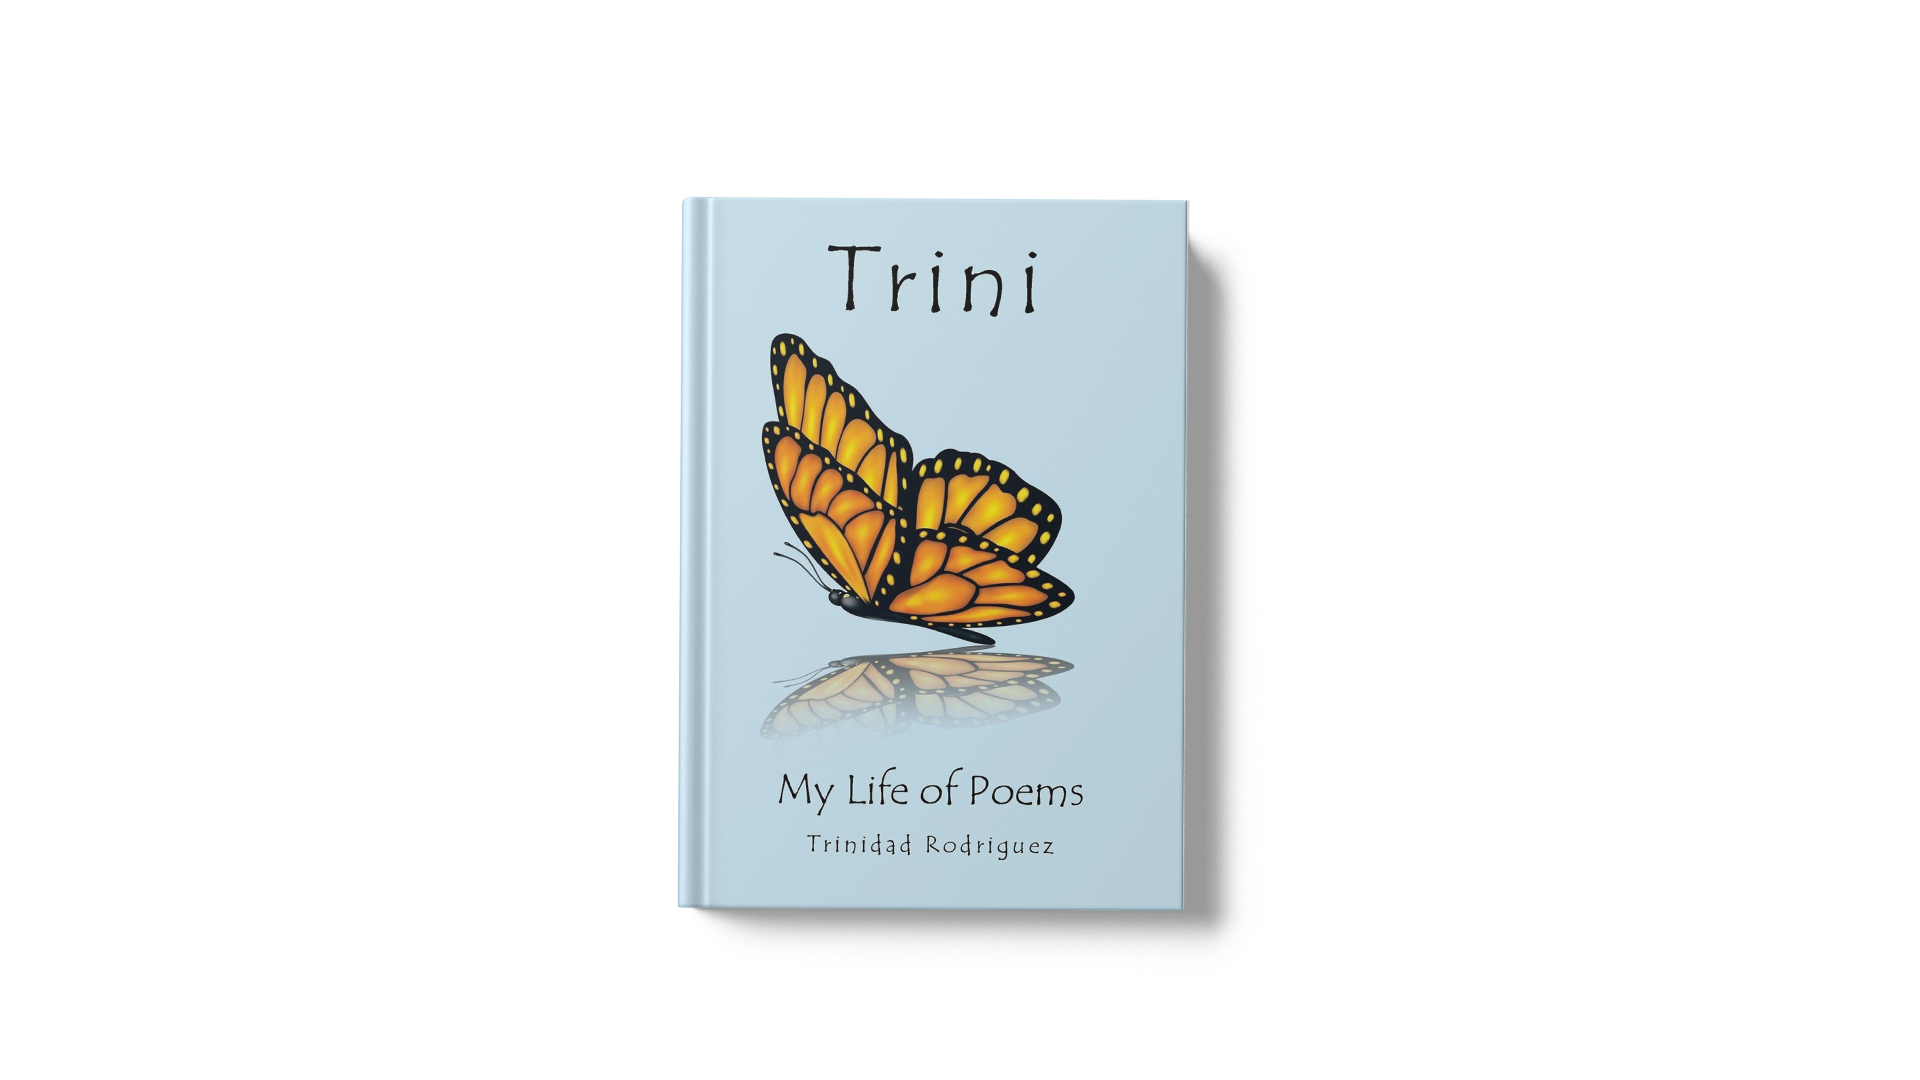 Trini My Life of Poems by Trinidad Rodriguez banner